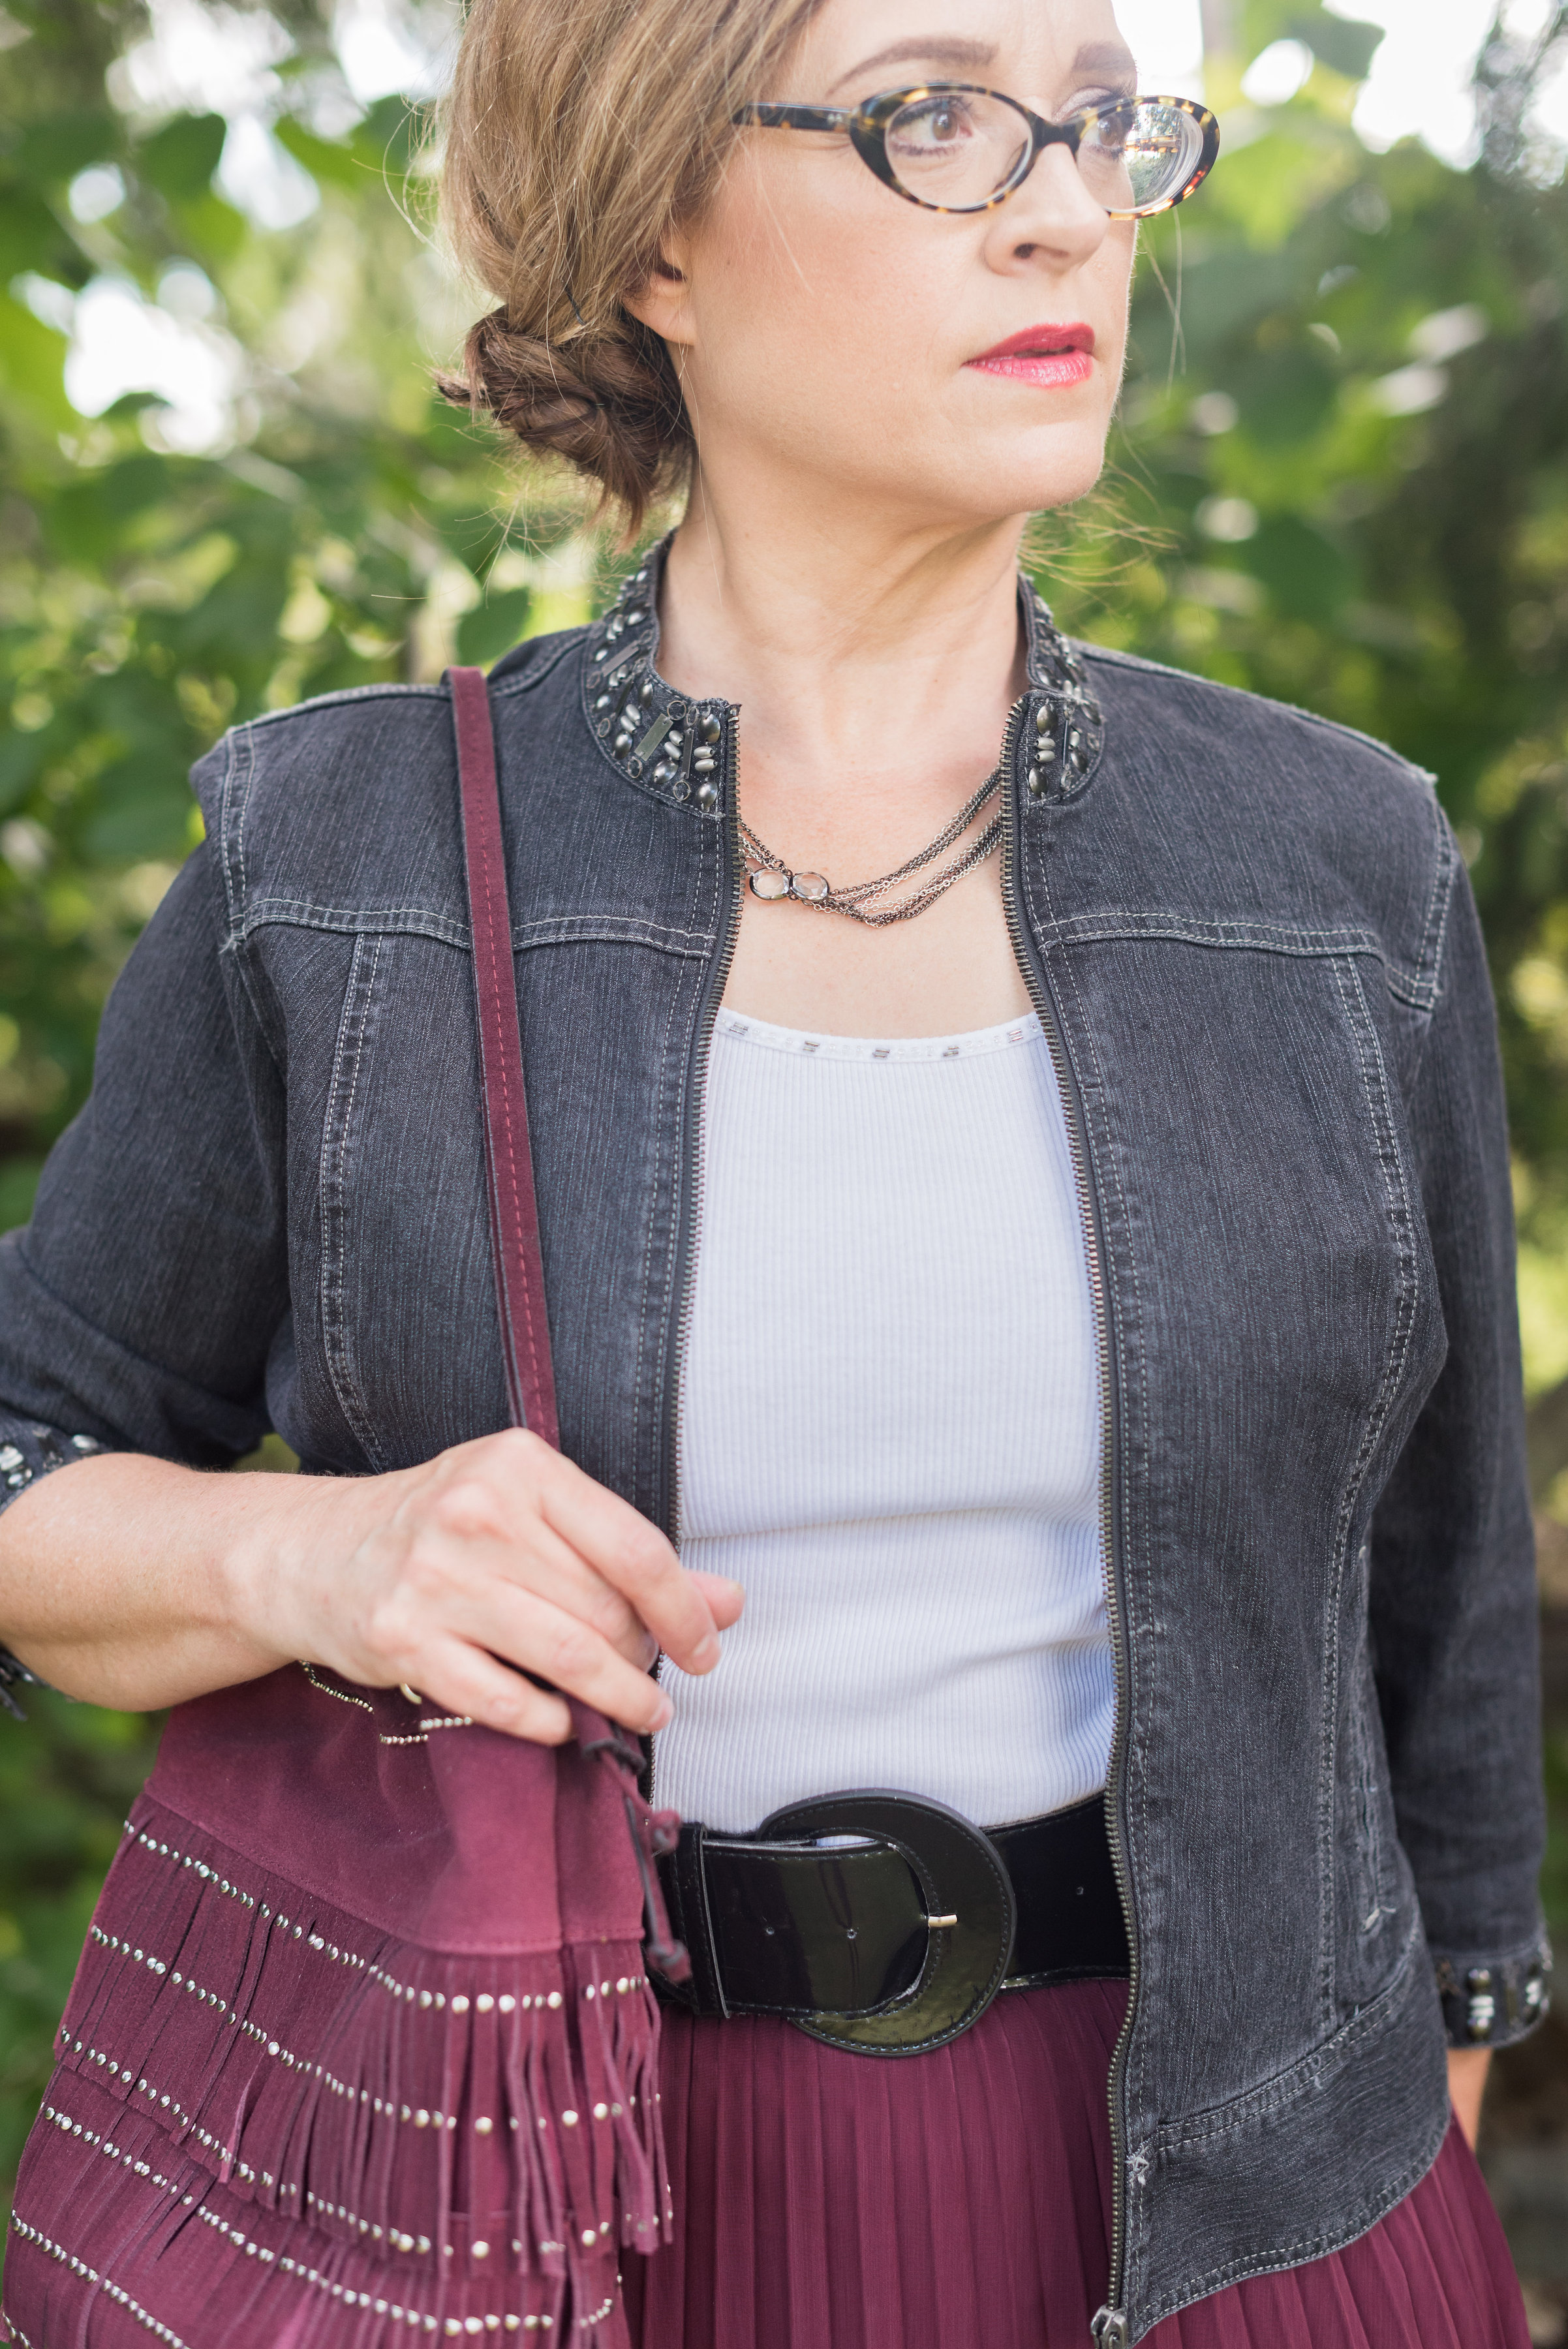 gray-maroon-outfit-5.jpg